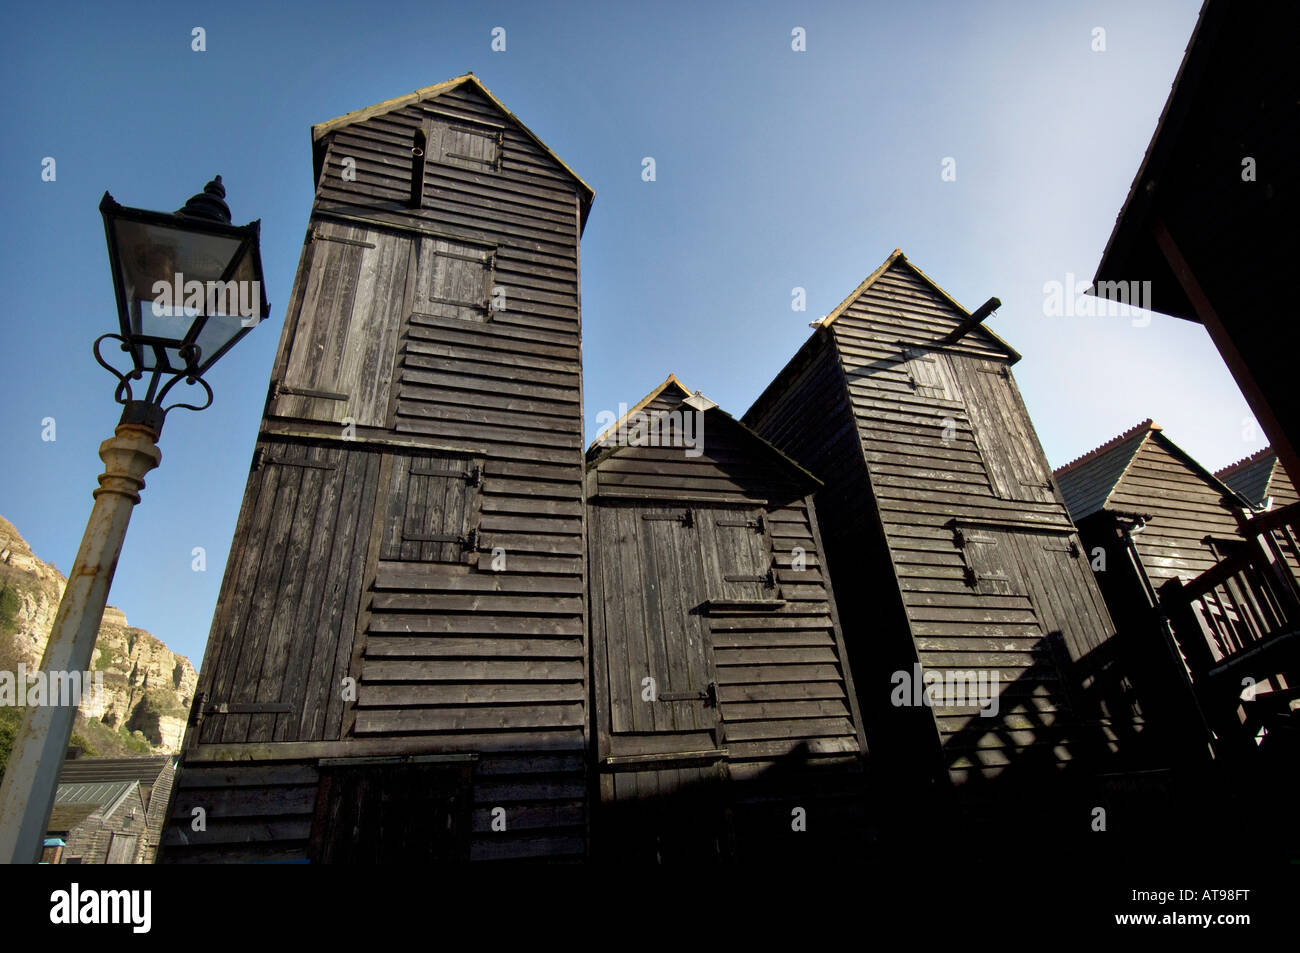 Victorian Net Shop huts in the Old Town by Hastings beach The tall black wooden net shops were built to store fishing - Stock Image